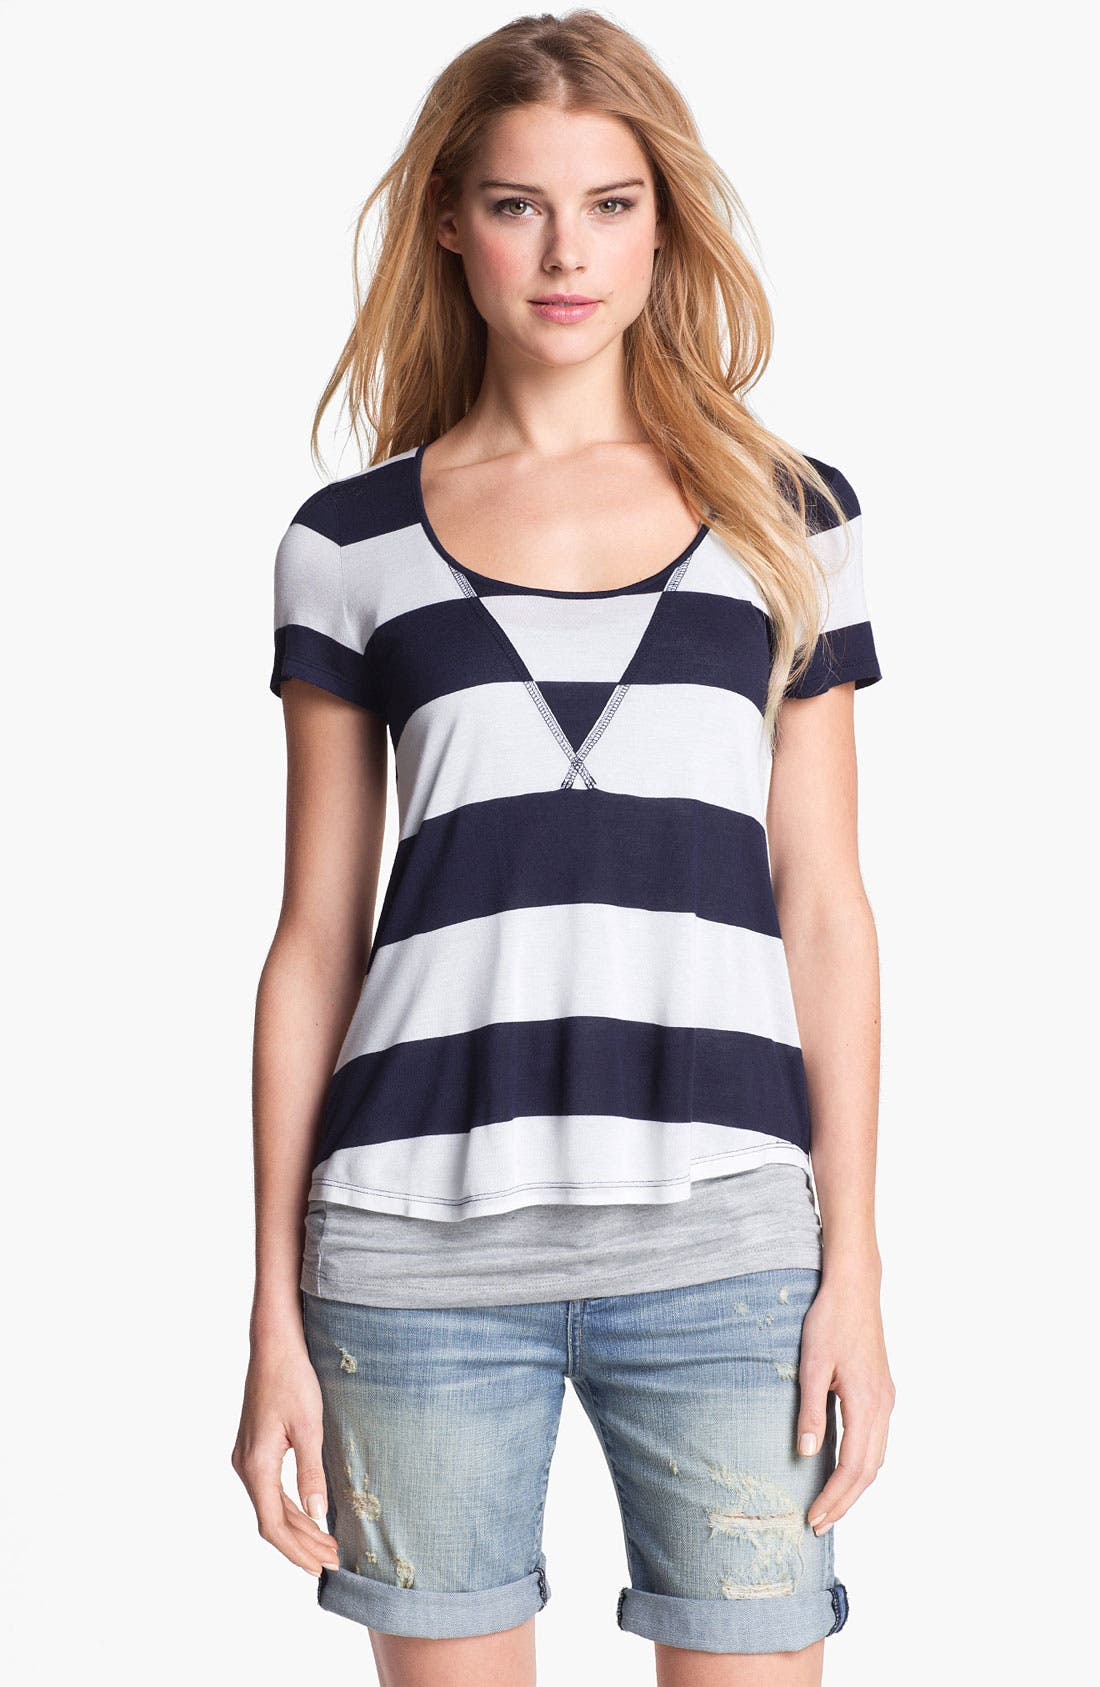 Alternate Image 1 Selected - Two by Vince Camuto 'Cabana' Stripe Tee